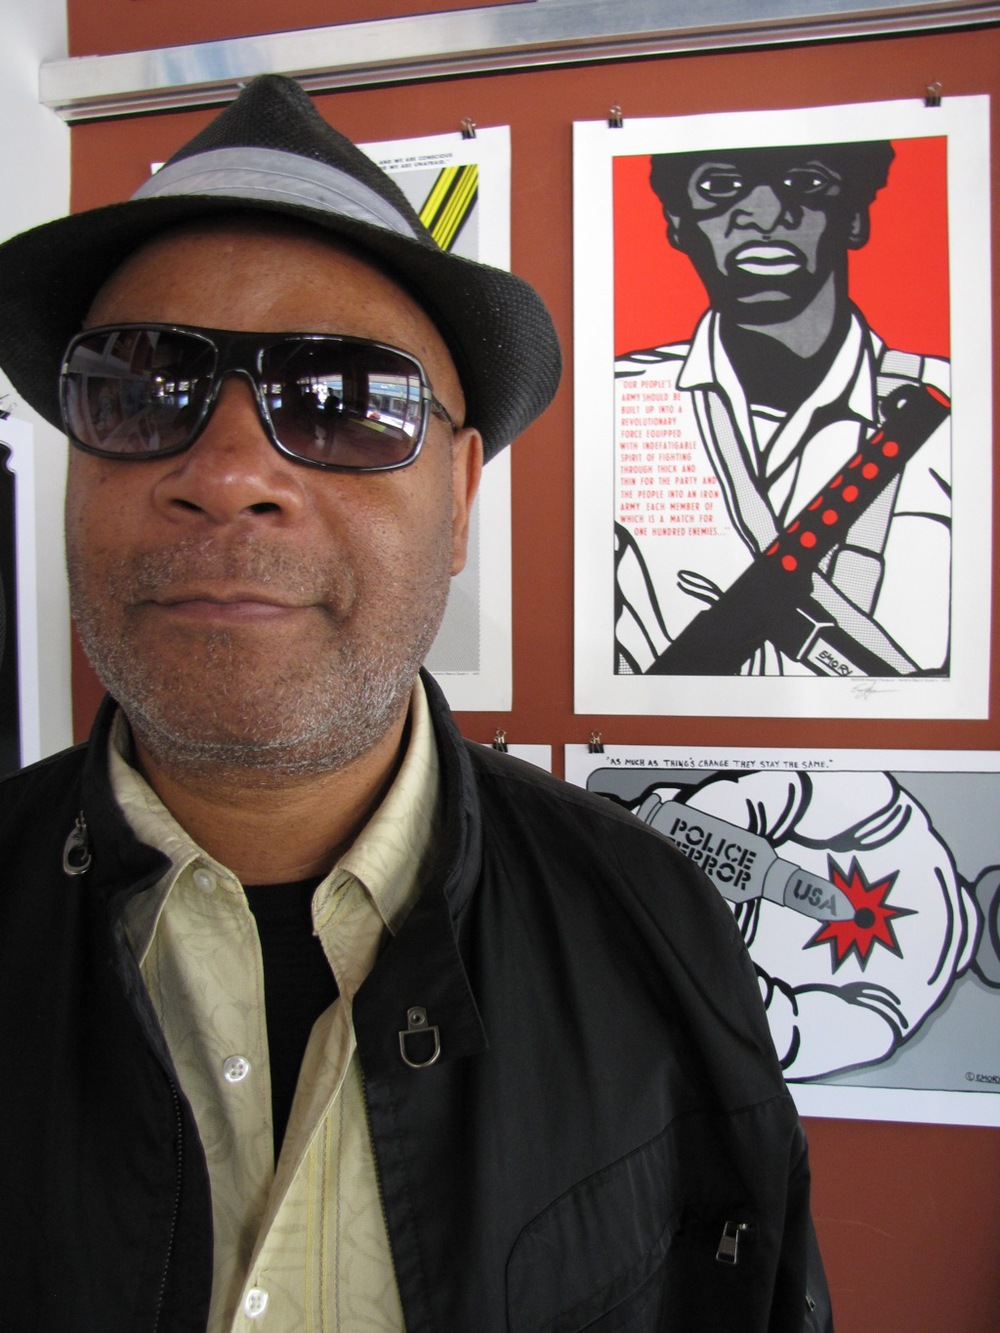 Power to the People! Emory Douglas